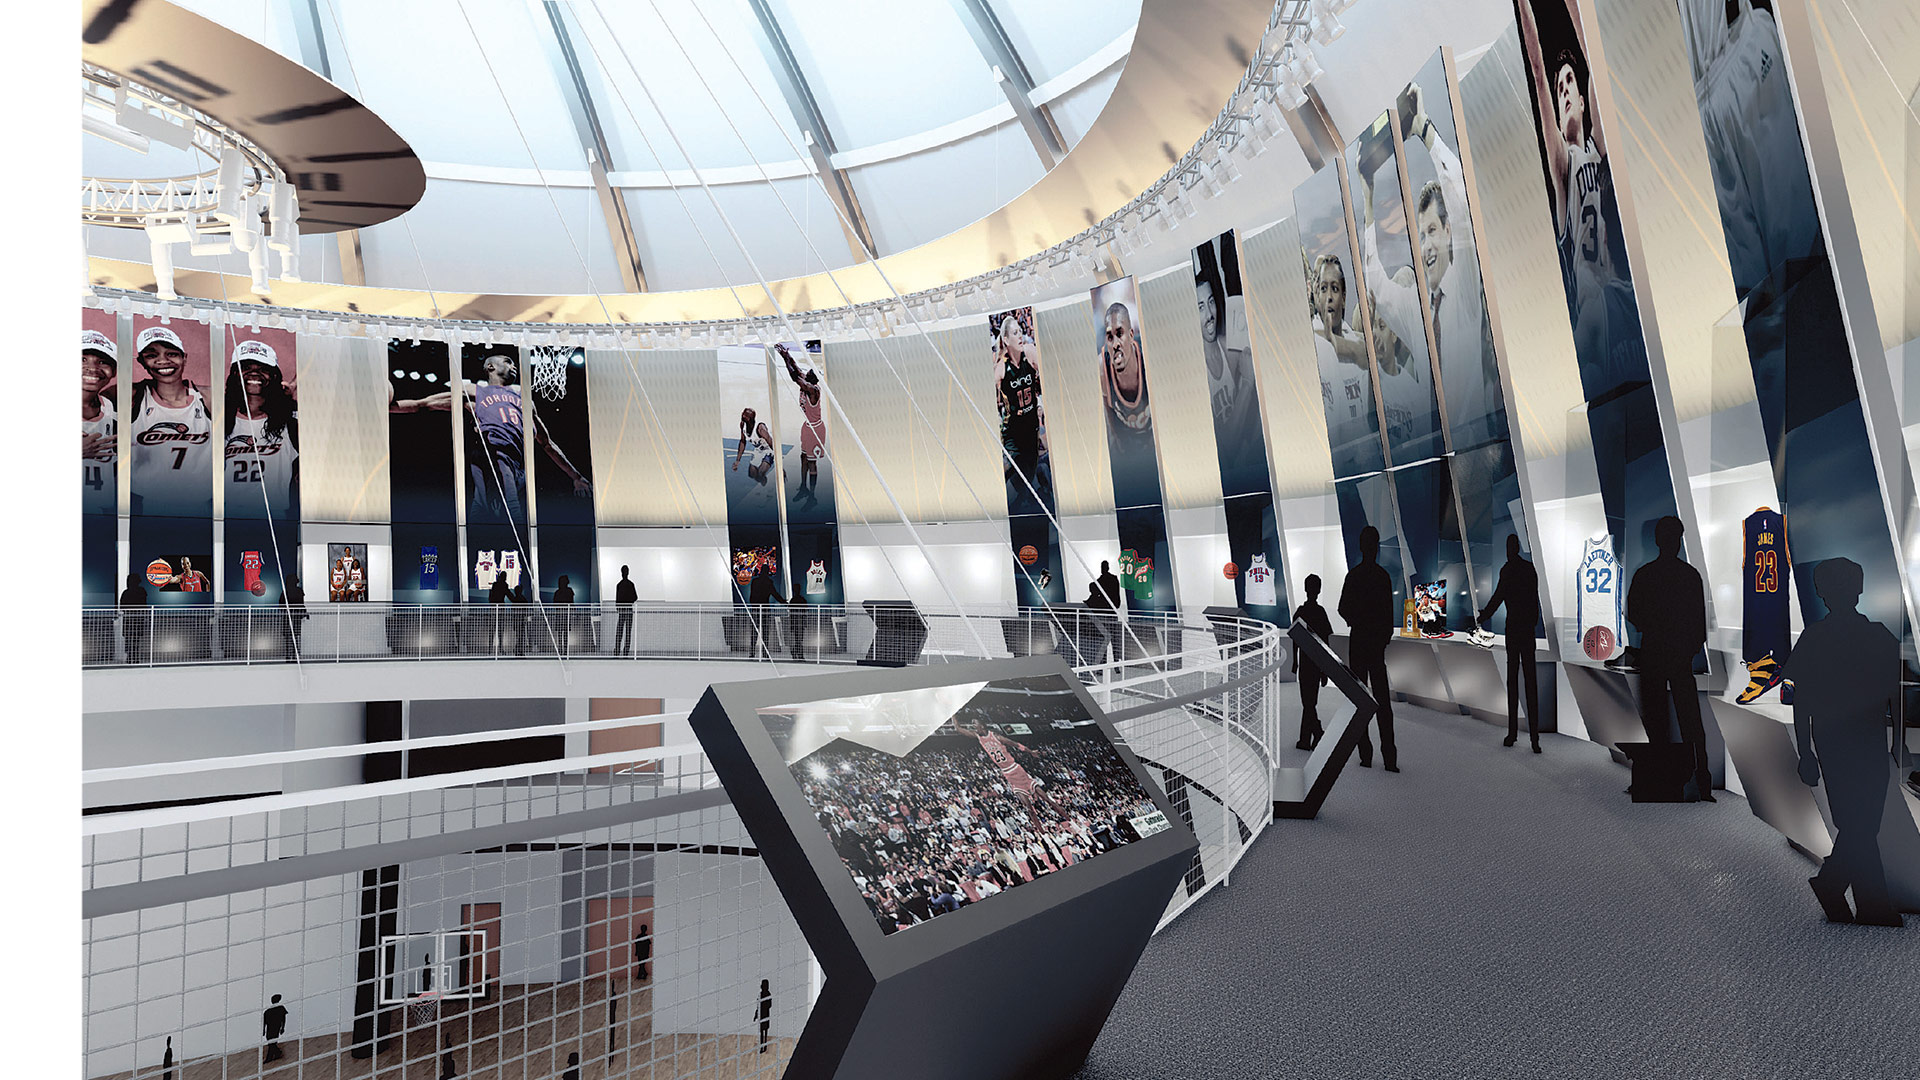 An architect's rendering of the renovated third-floor mezzanine at the Basketball Hall of Fame, which includes the tributes to the inductees.